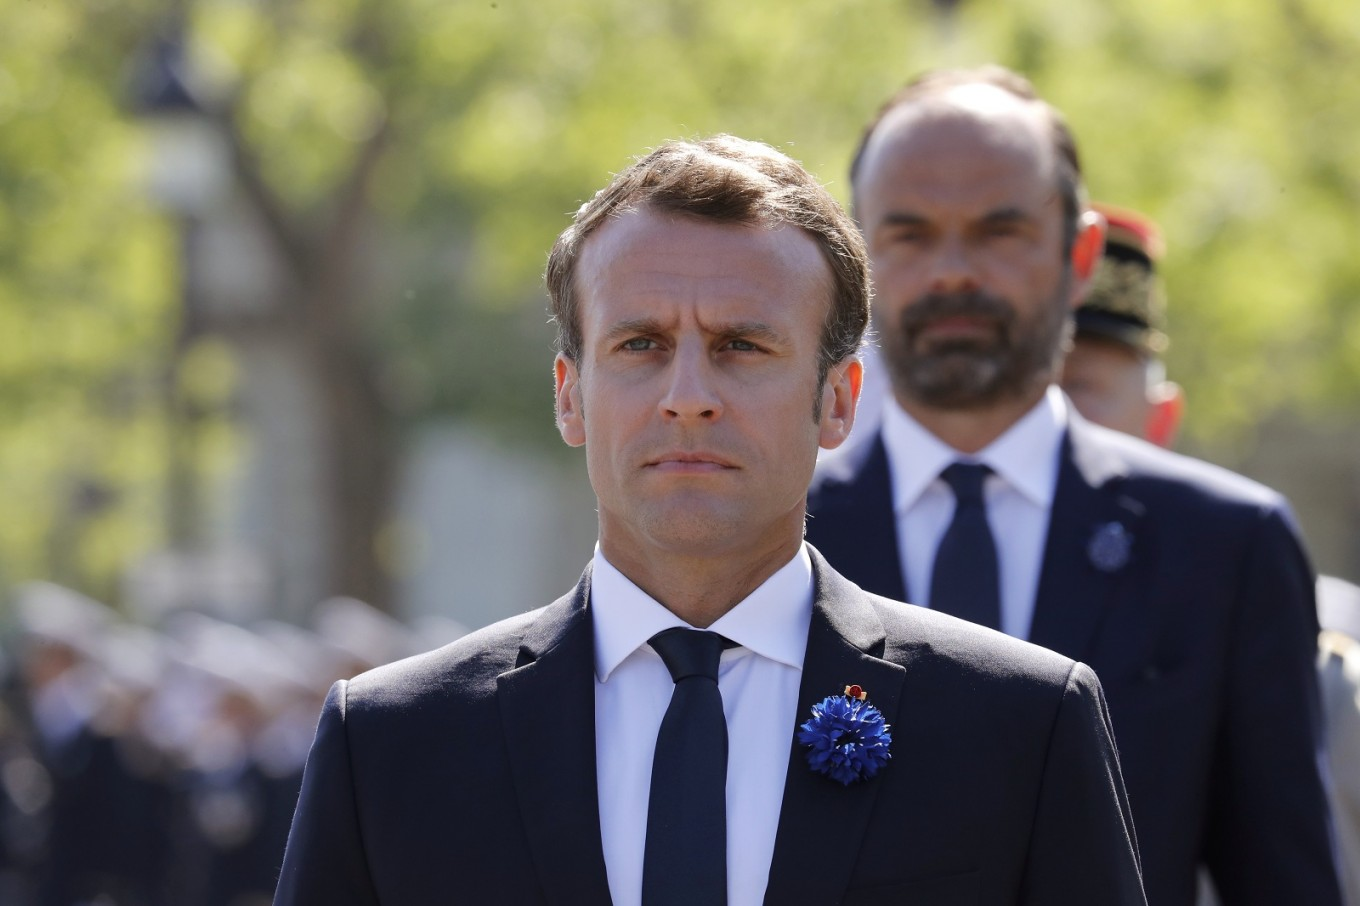 French wax museum will rethink its mocked Macron sculpture